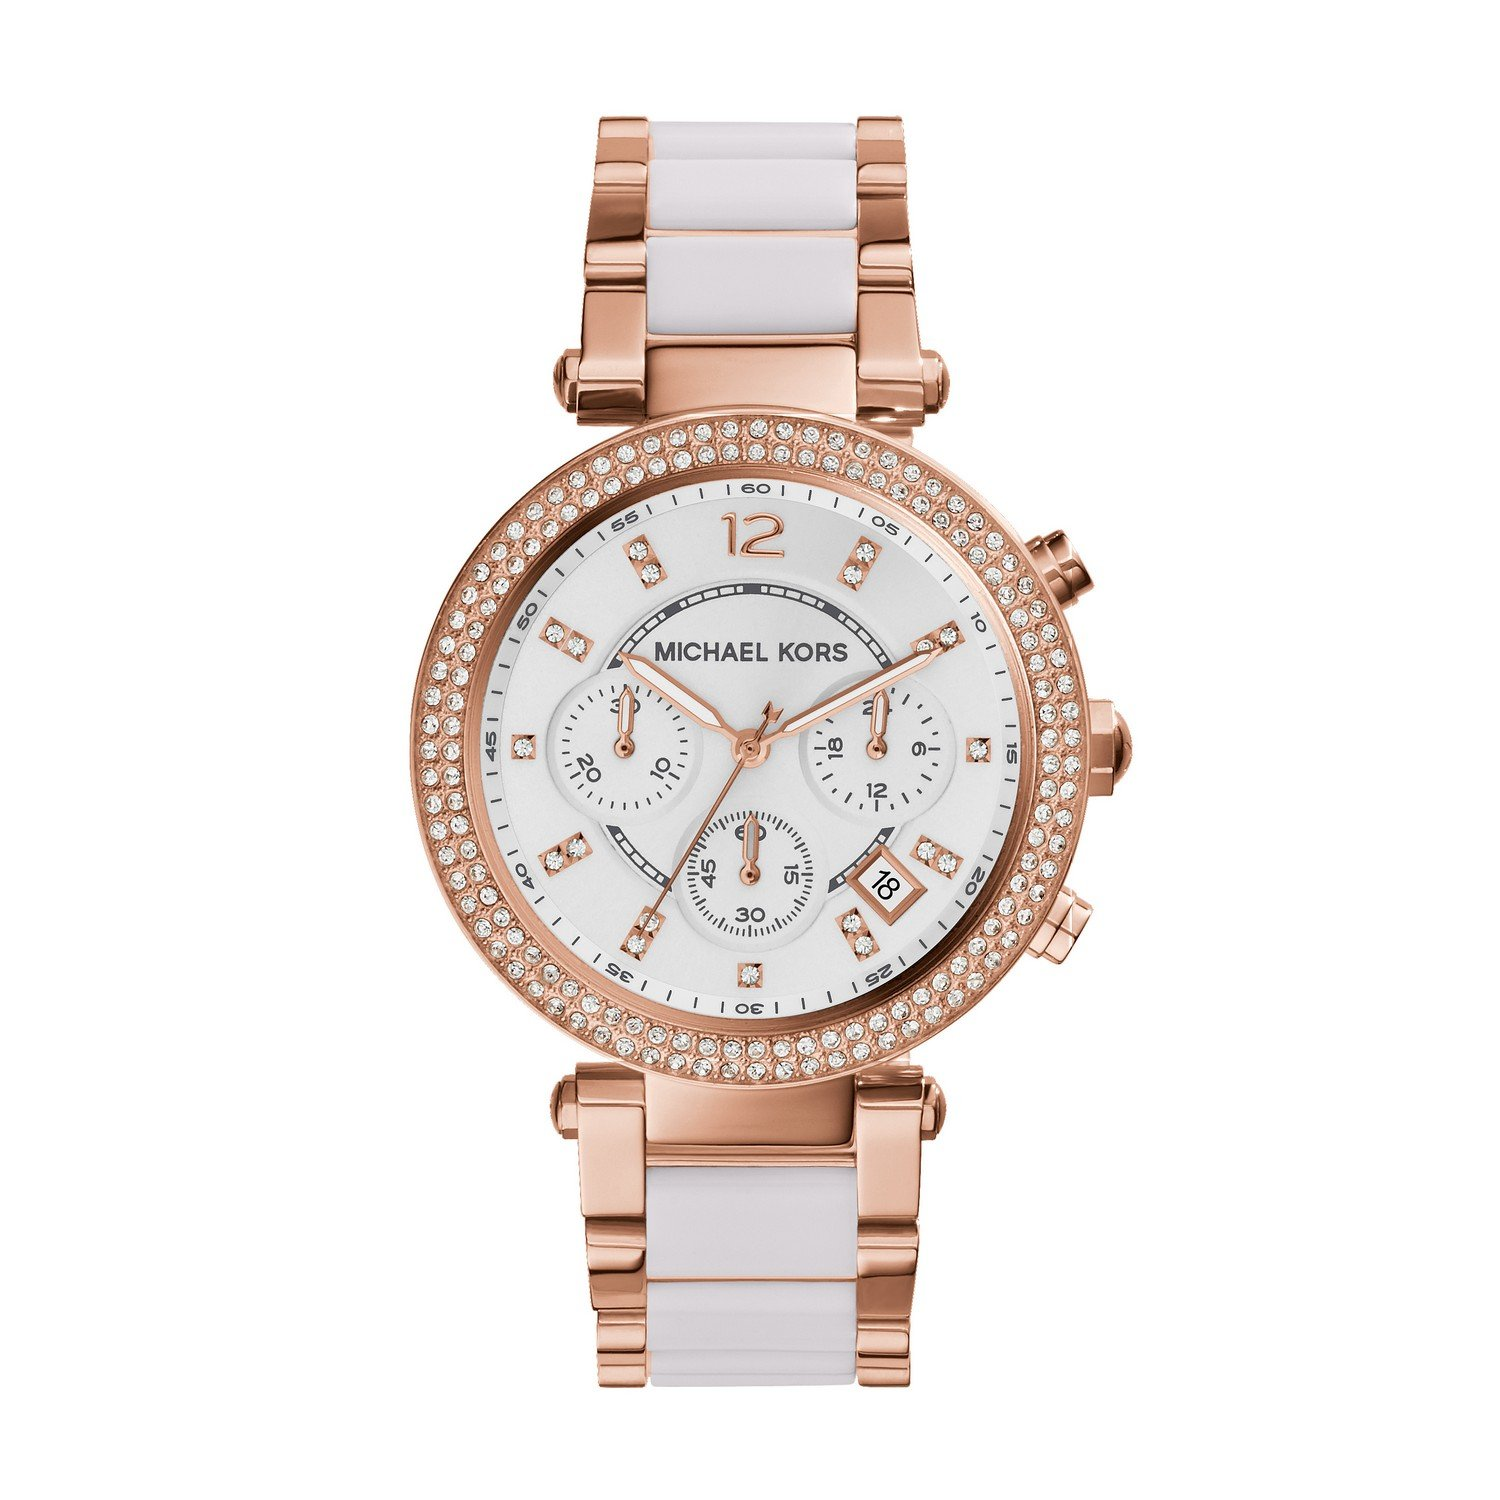 1638f47bbb4e1 Michael Kors Women s Watch MK5774  Michael Kors  Amazon.co.uk  Watches